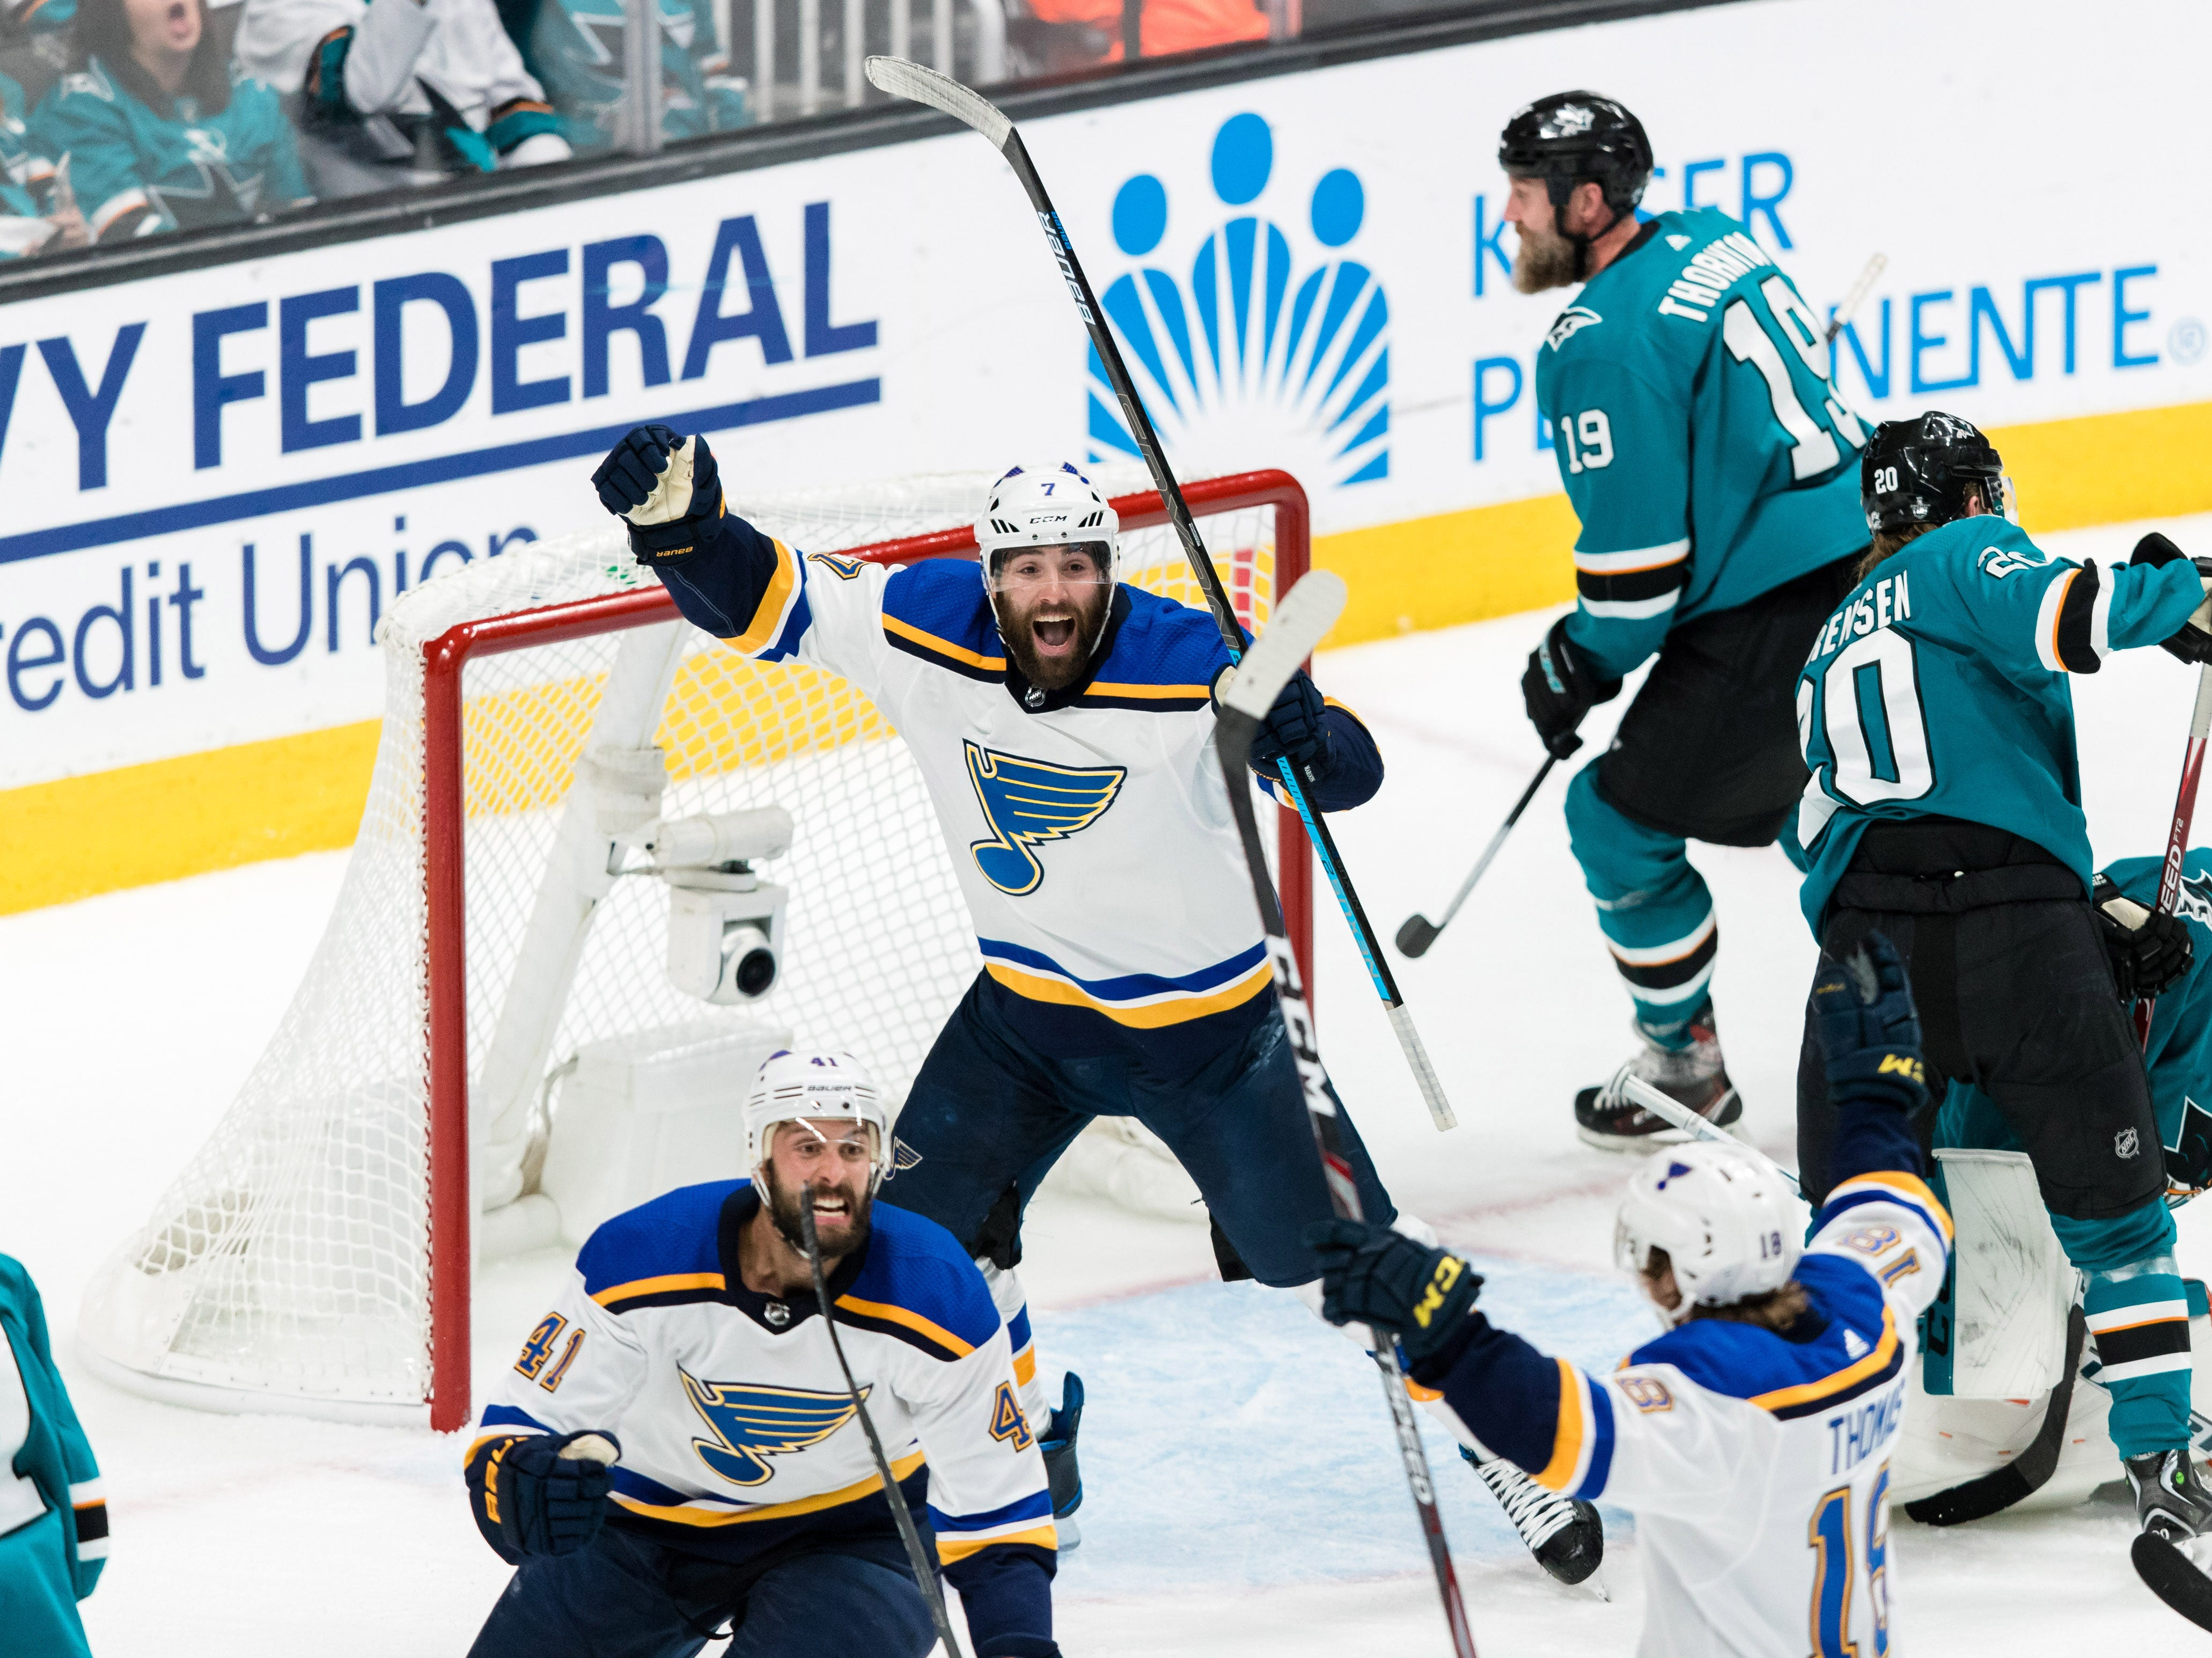 Conference finals: St. Louis Blues defenseman Robert Bortuzzo (41) celebrates after scoring a goal against the San Jose Sharks during the second period of Game 2.